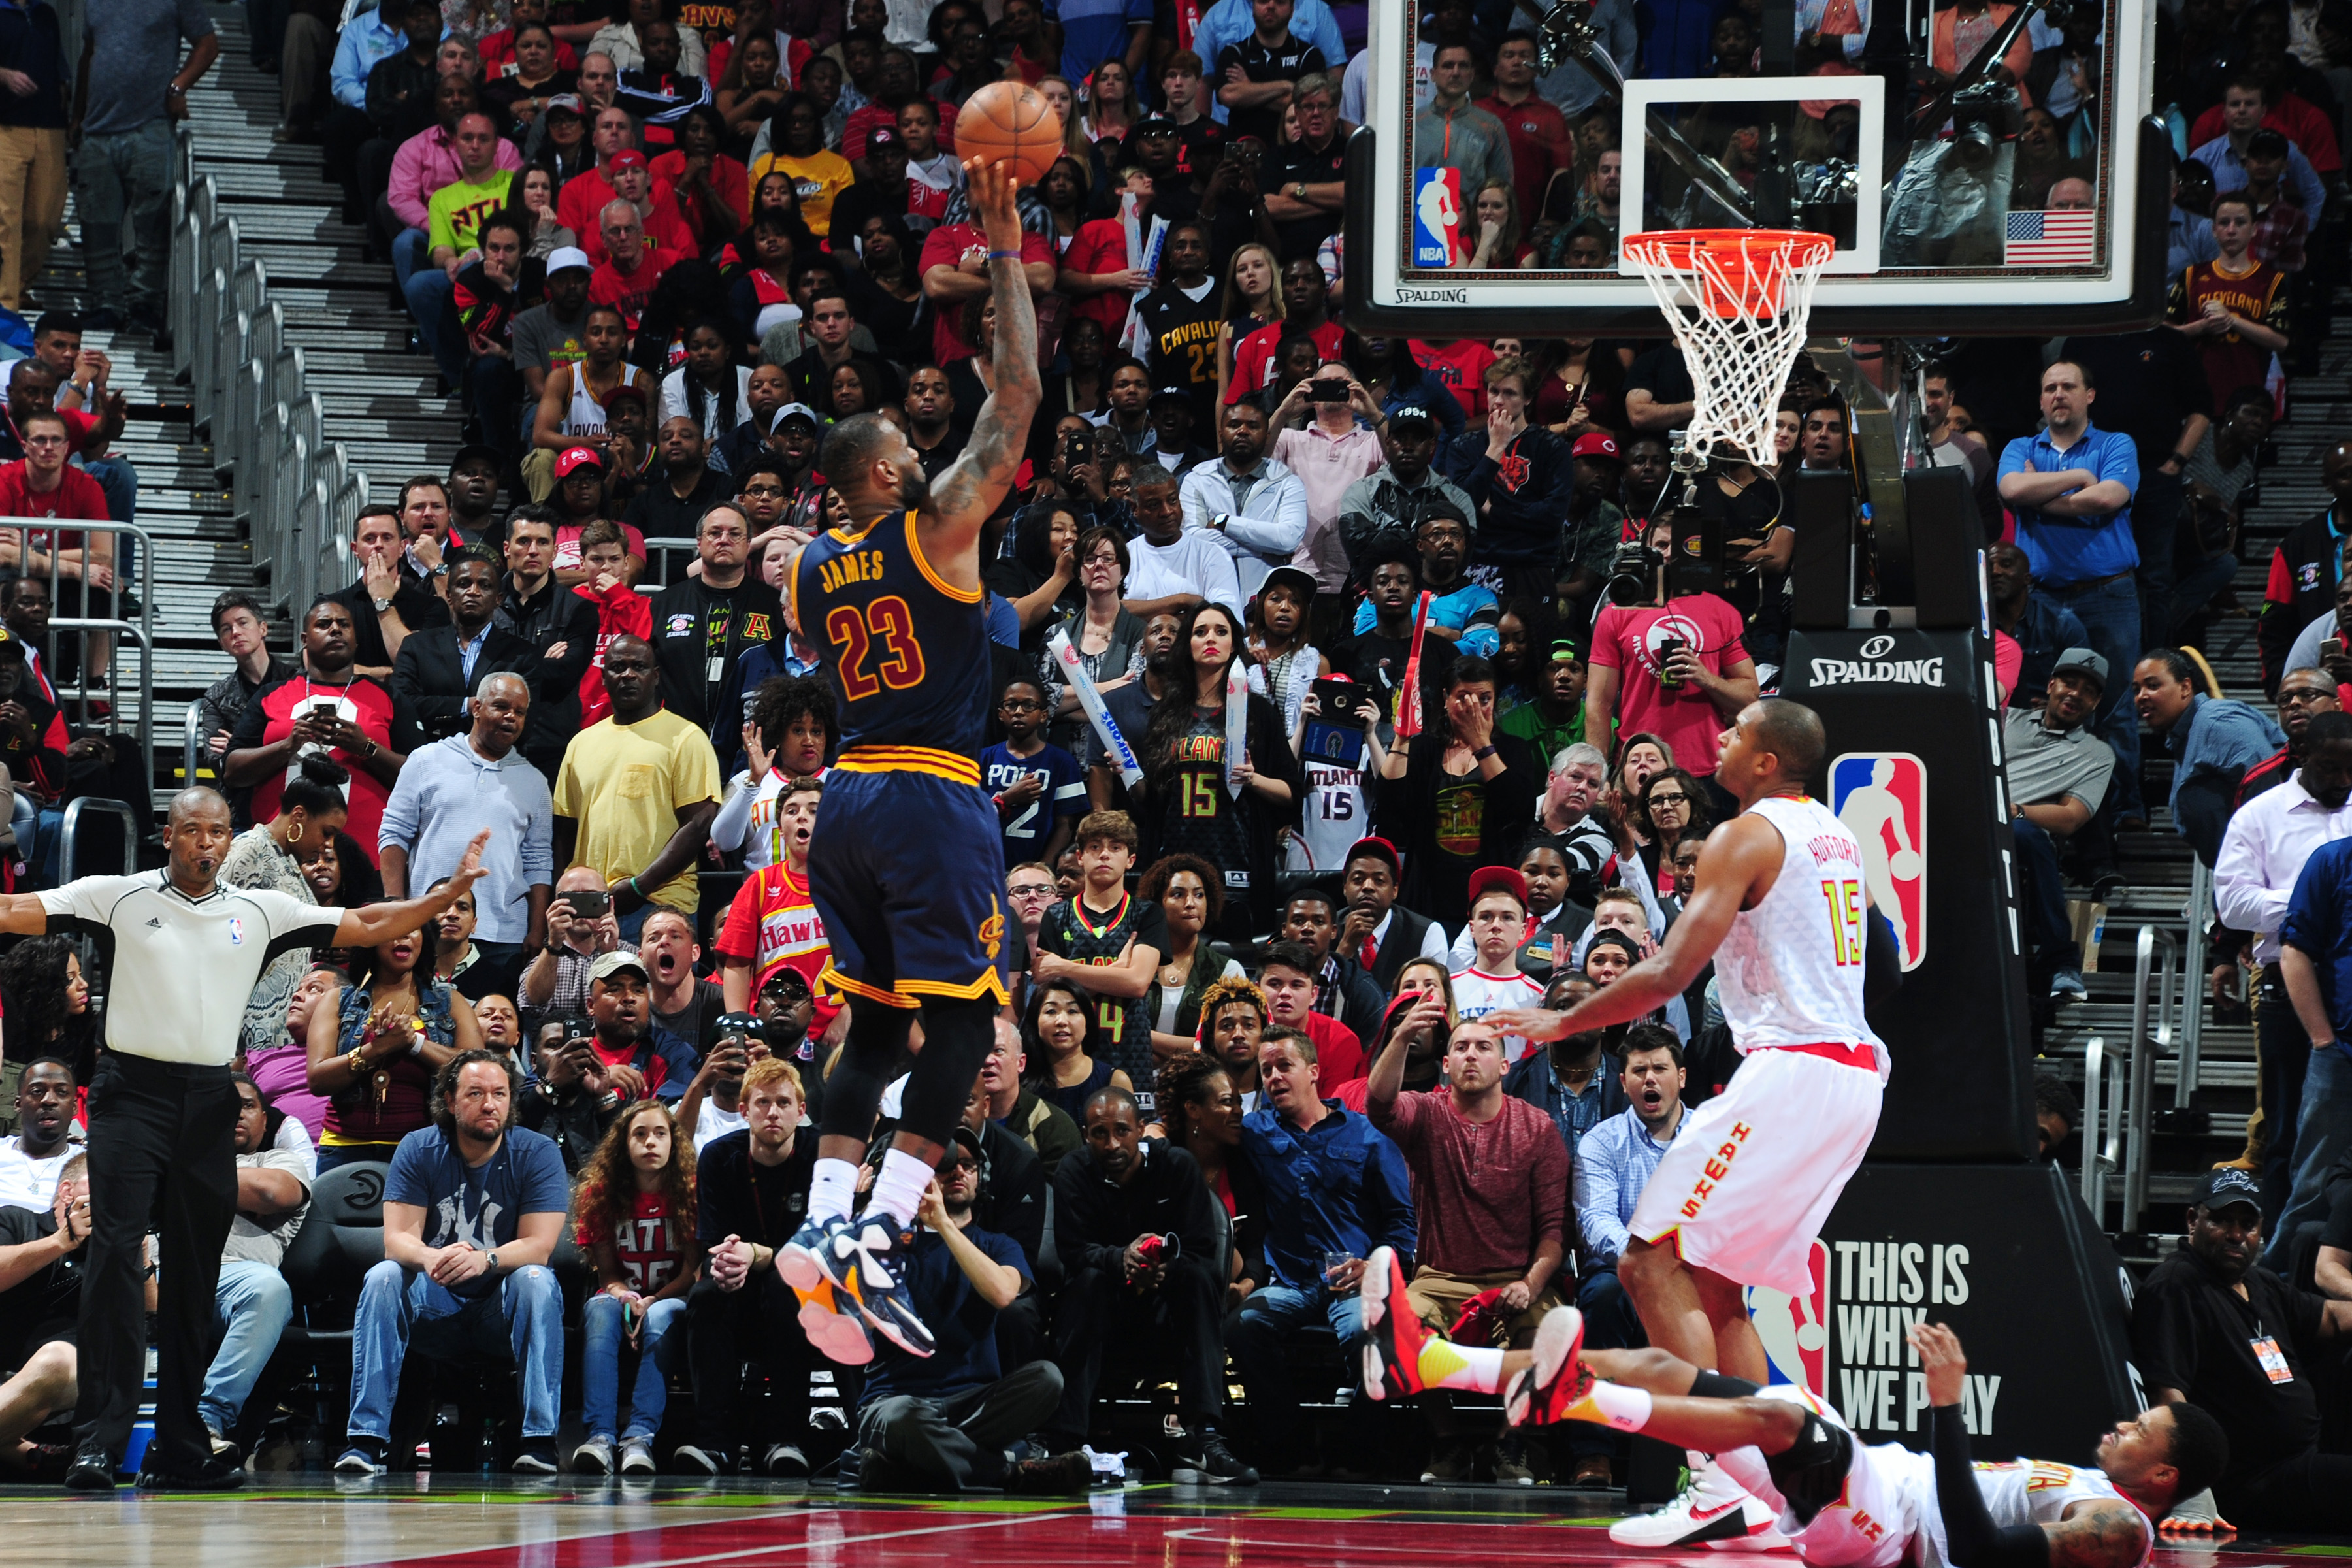 ATLANTA, GA - APRIL 1: LeBron James #23 of the Cleveland Cavaliers shoots the ball against the Atlanta Hawks on April 1, 2016 at Philips Arena in Atlanta, Georgia.  (Photo by Scott Cunningham/NBAE via Getty Images)